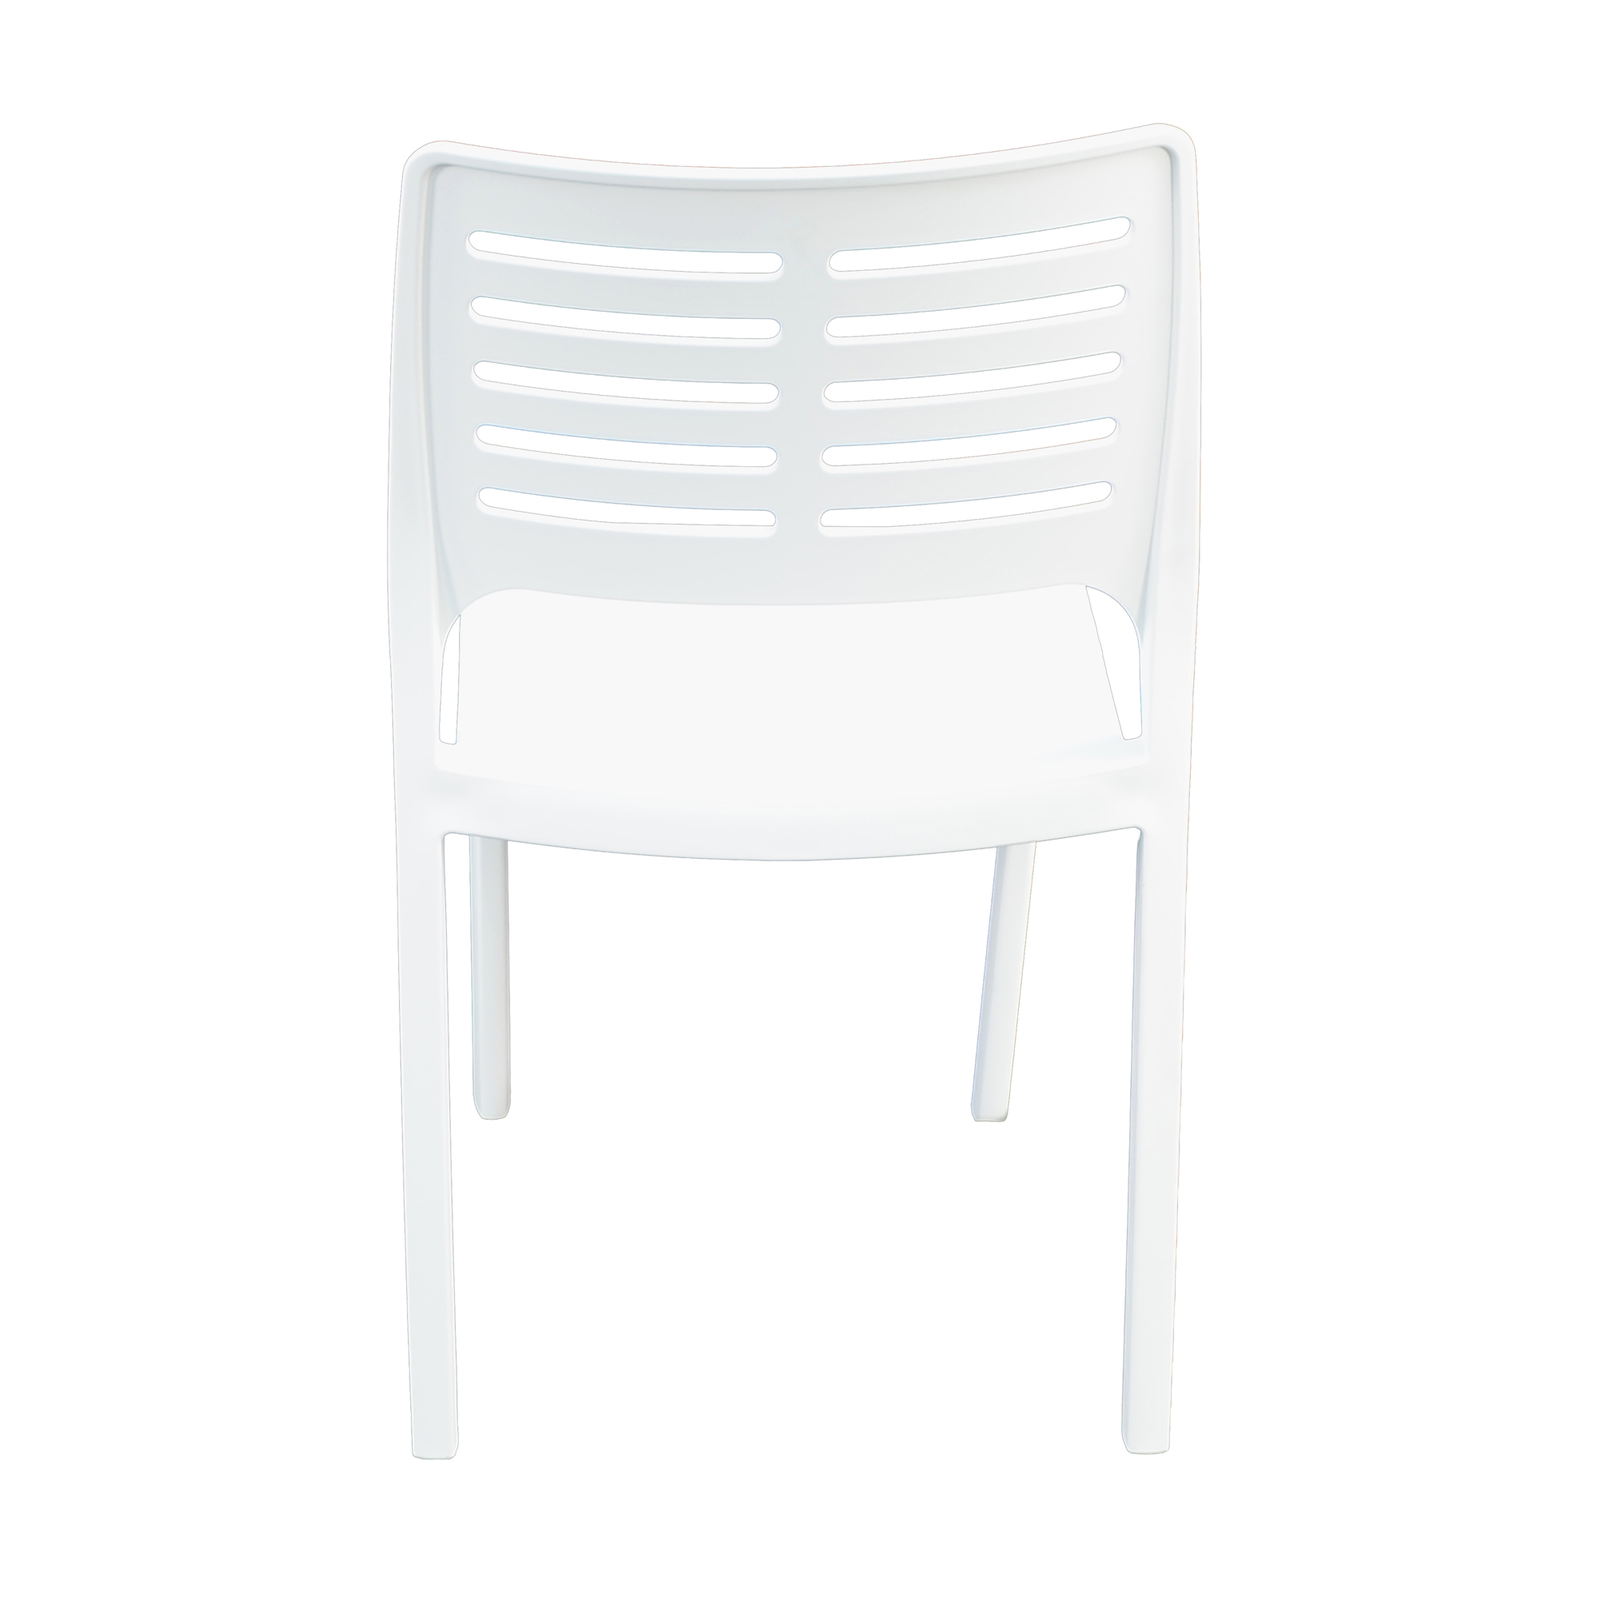 Trabella Mistral Chair Pack Of 2 in White